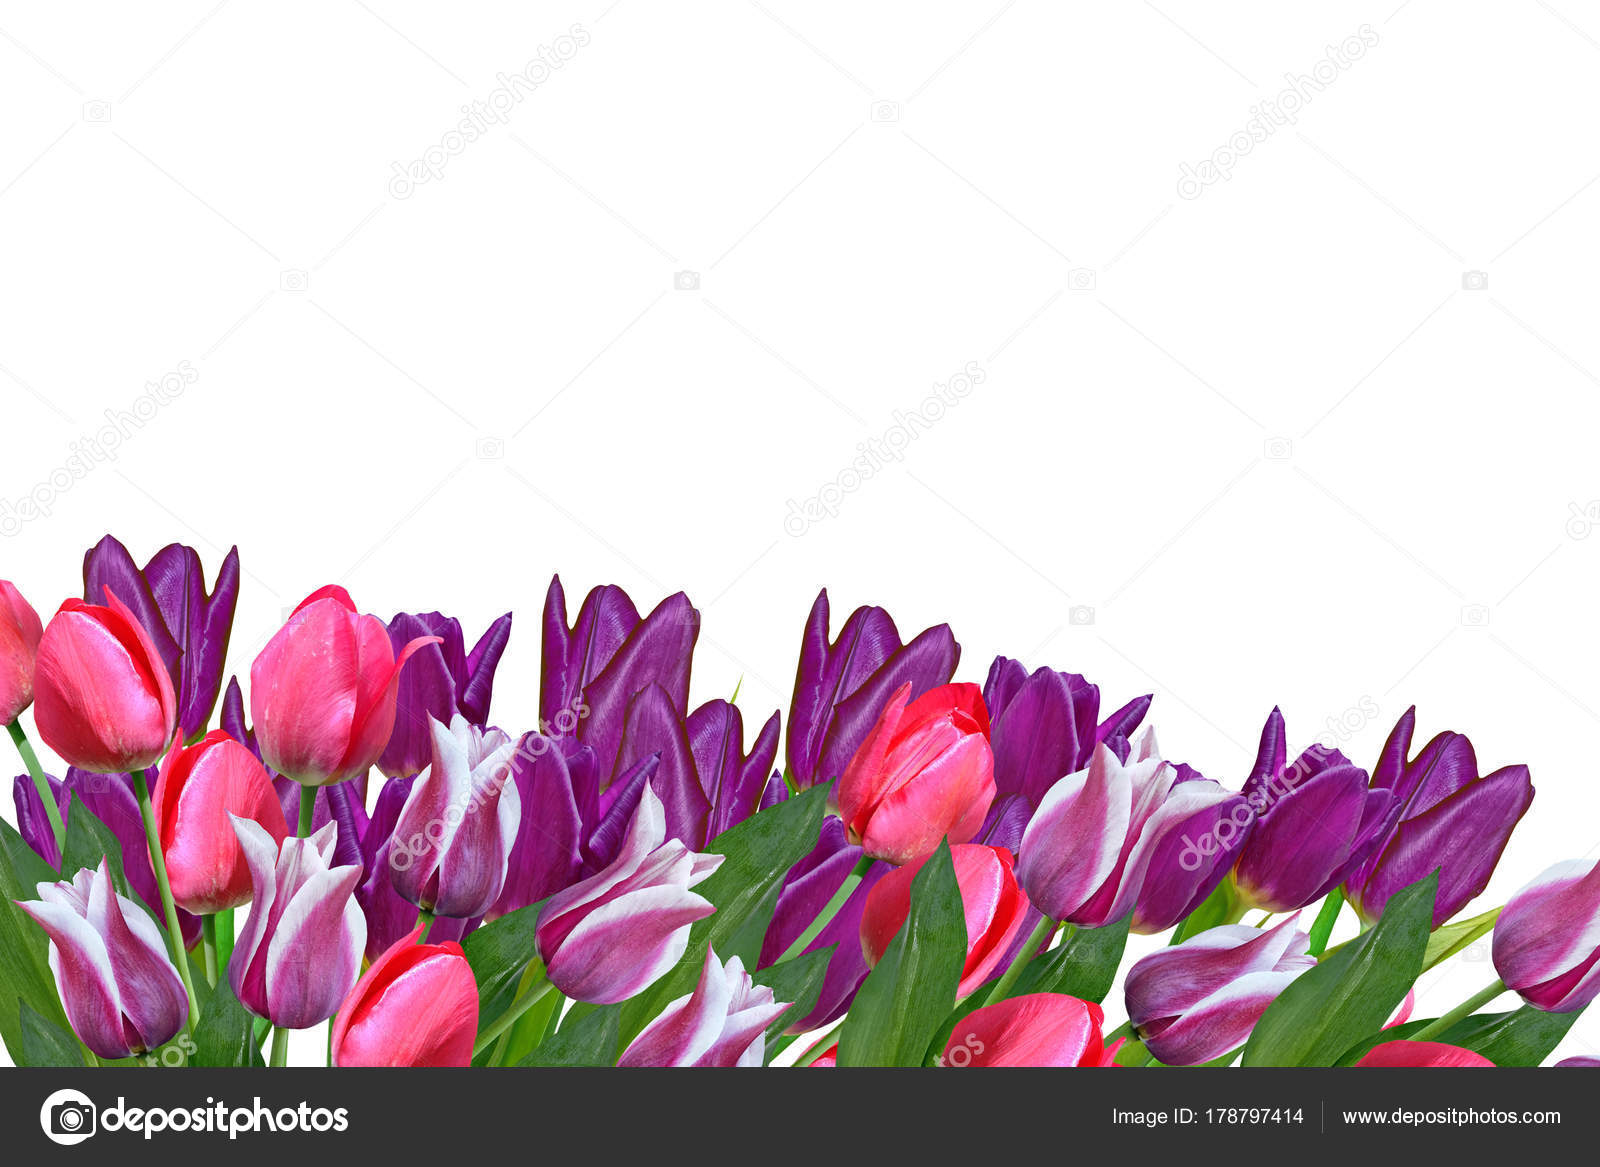 Spring flowers tulips isolated on white background stock photo spring flowers tulips isolated on white background stock photo mightylinksfo Image collections